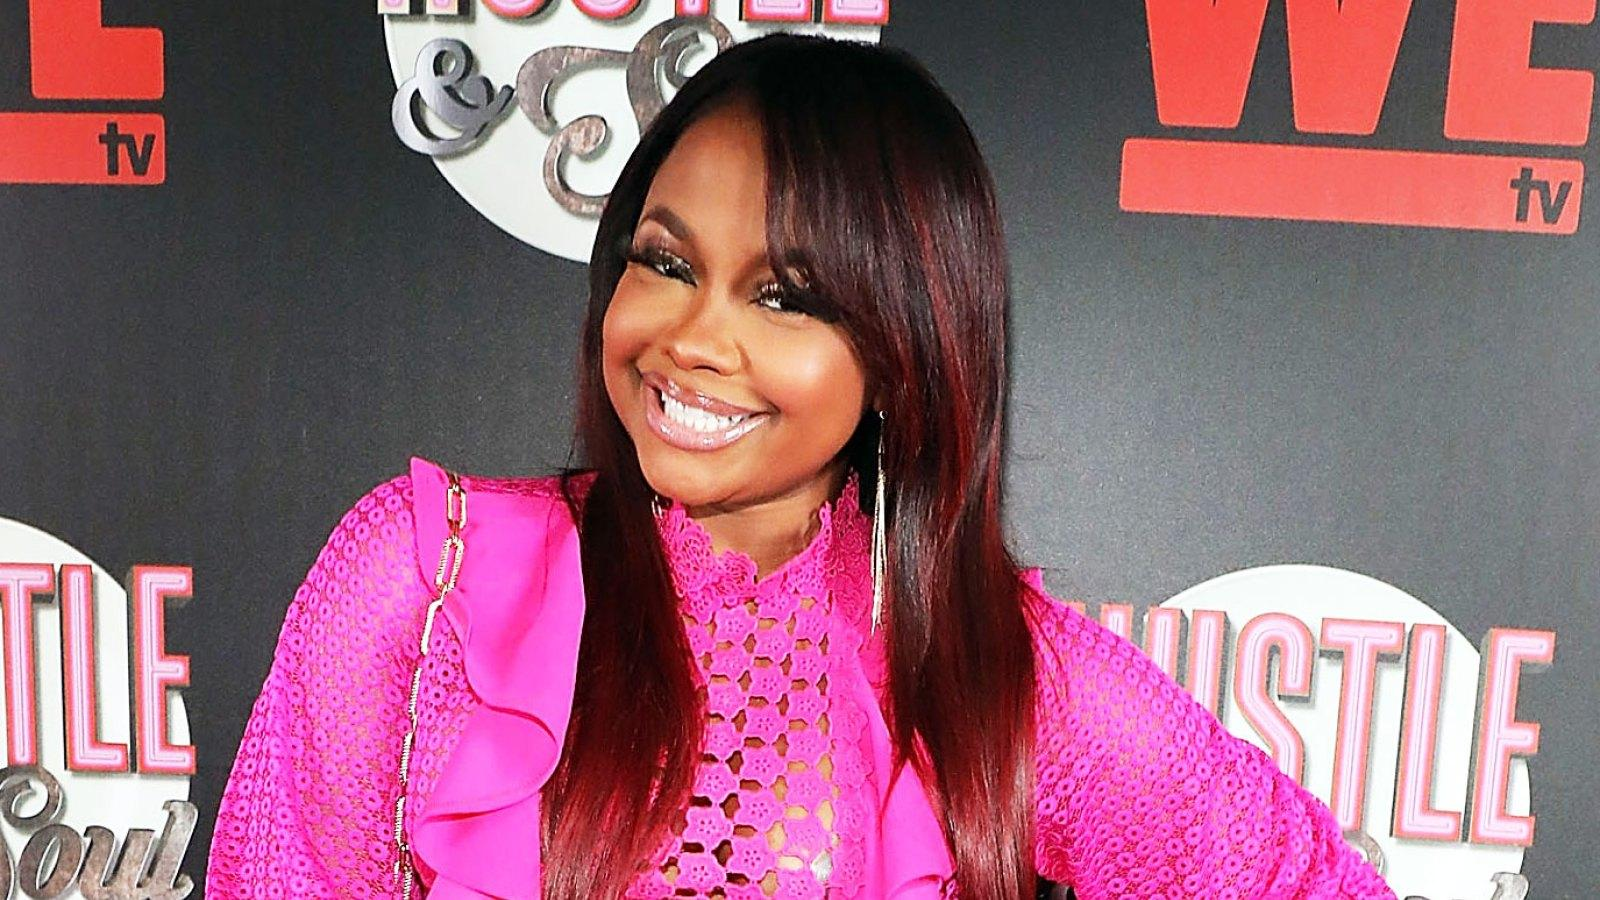 Phaedra Parks Shares A Throwback Photo From 16 Years Ago And She Looks The Same! Fans Are In Awe